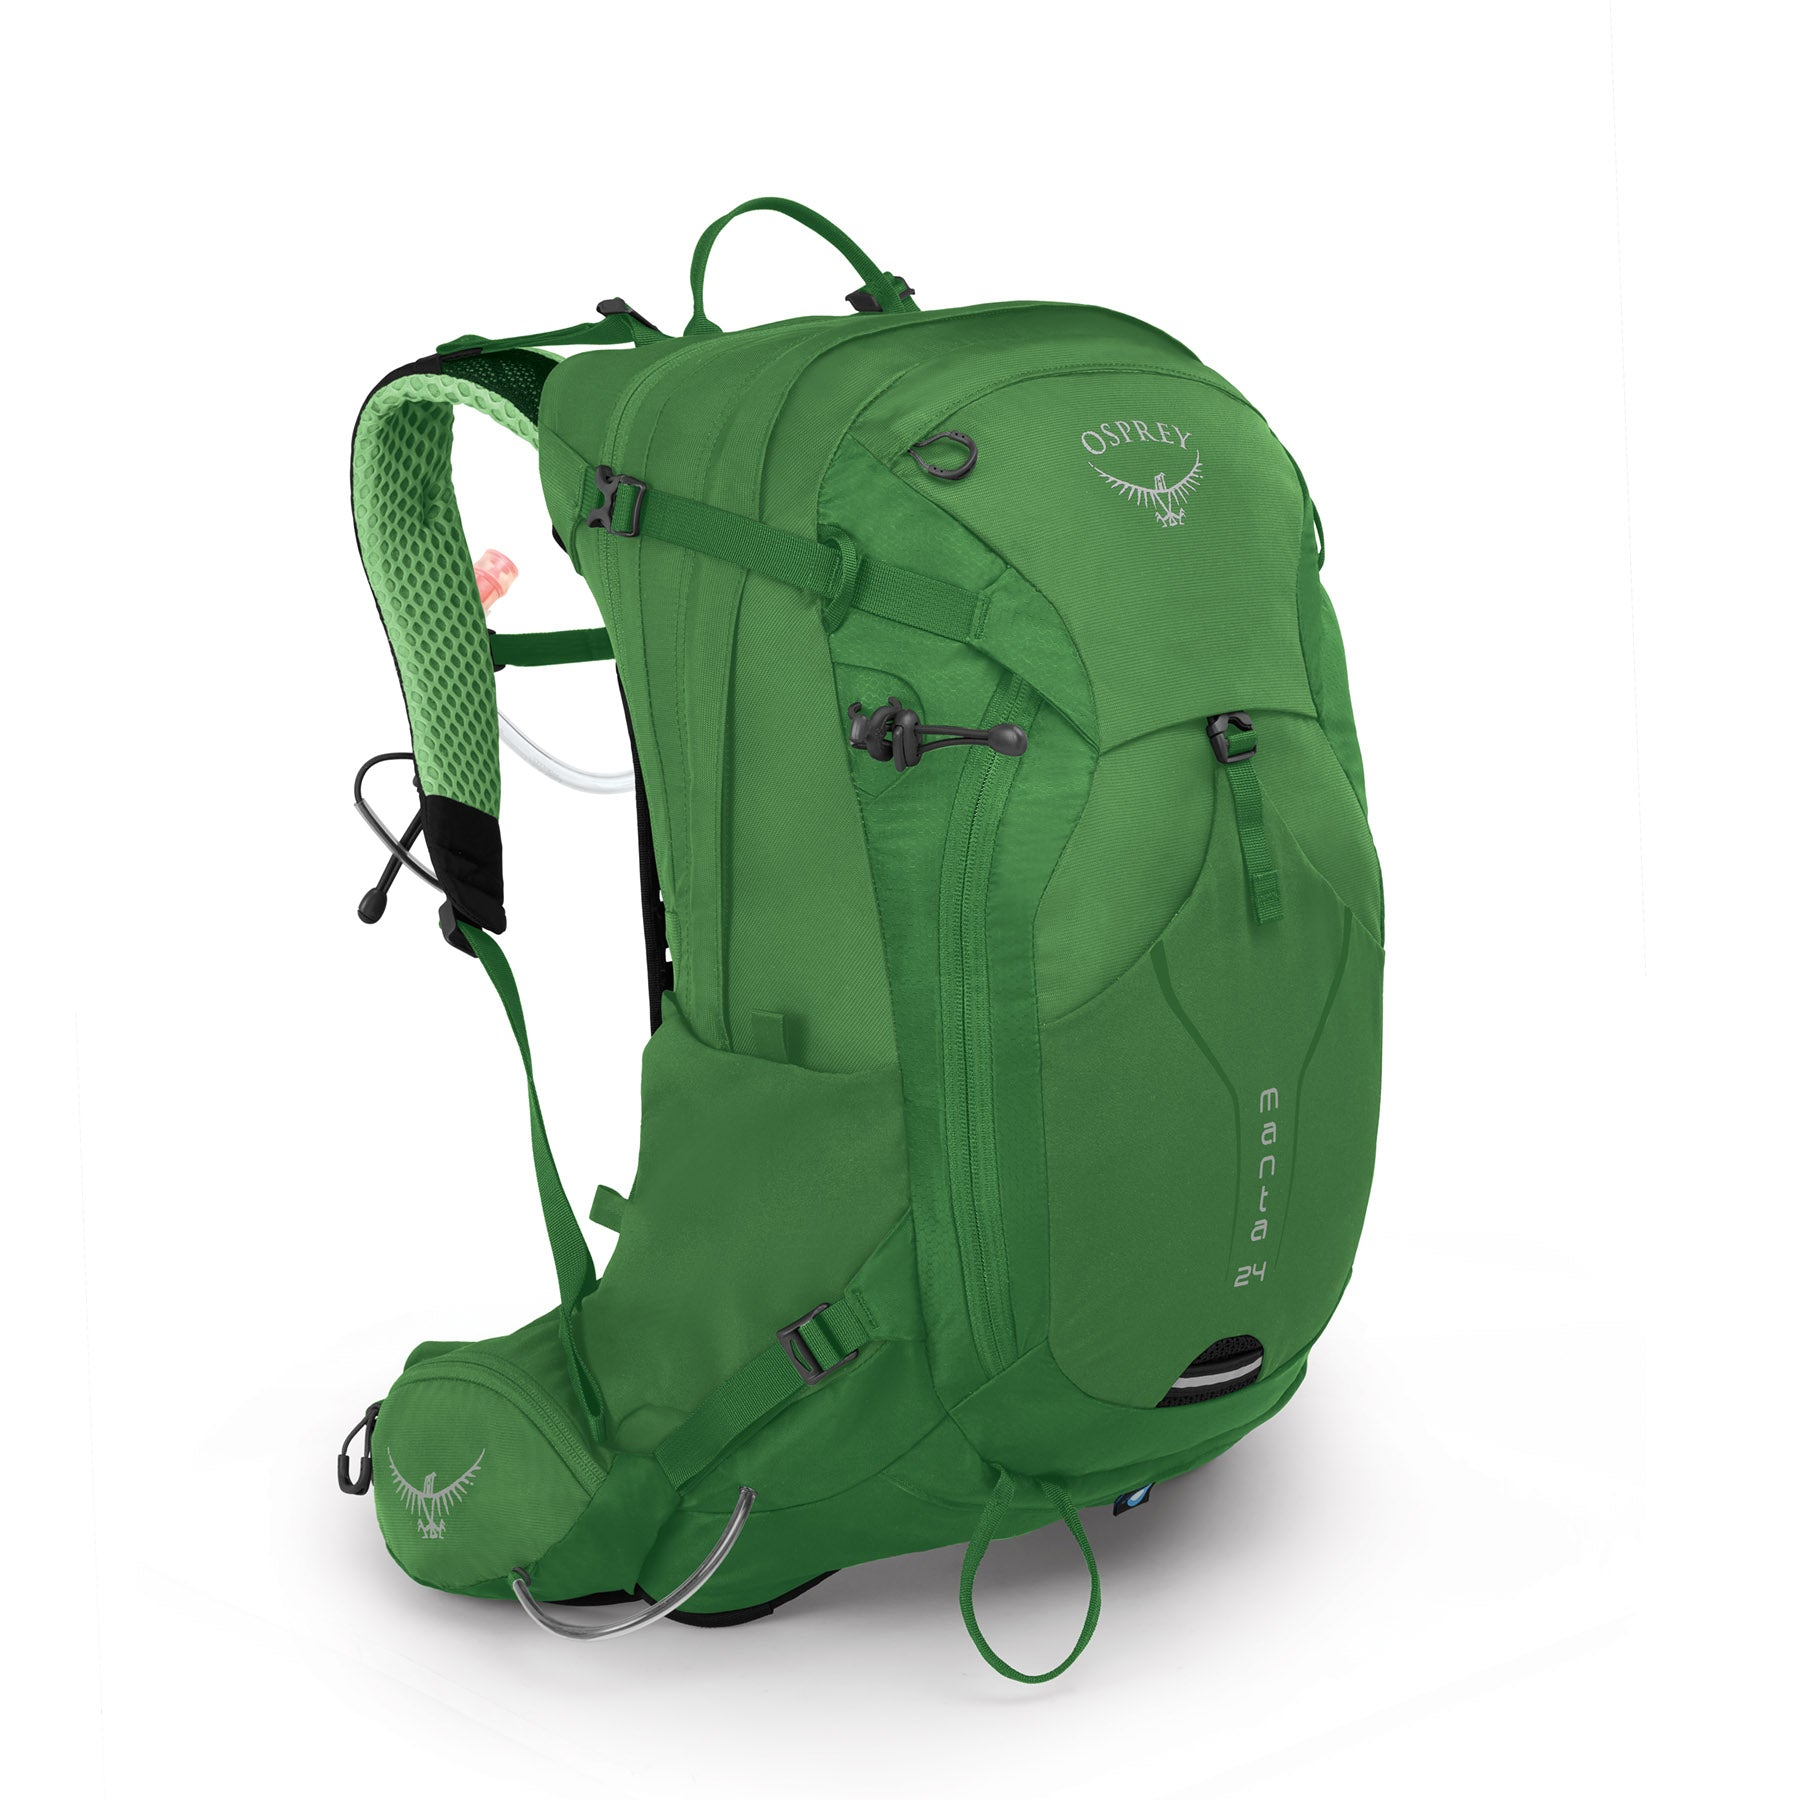 a green hydration pack